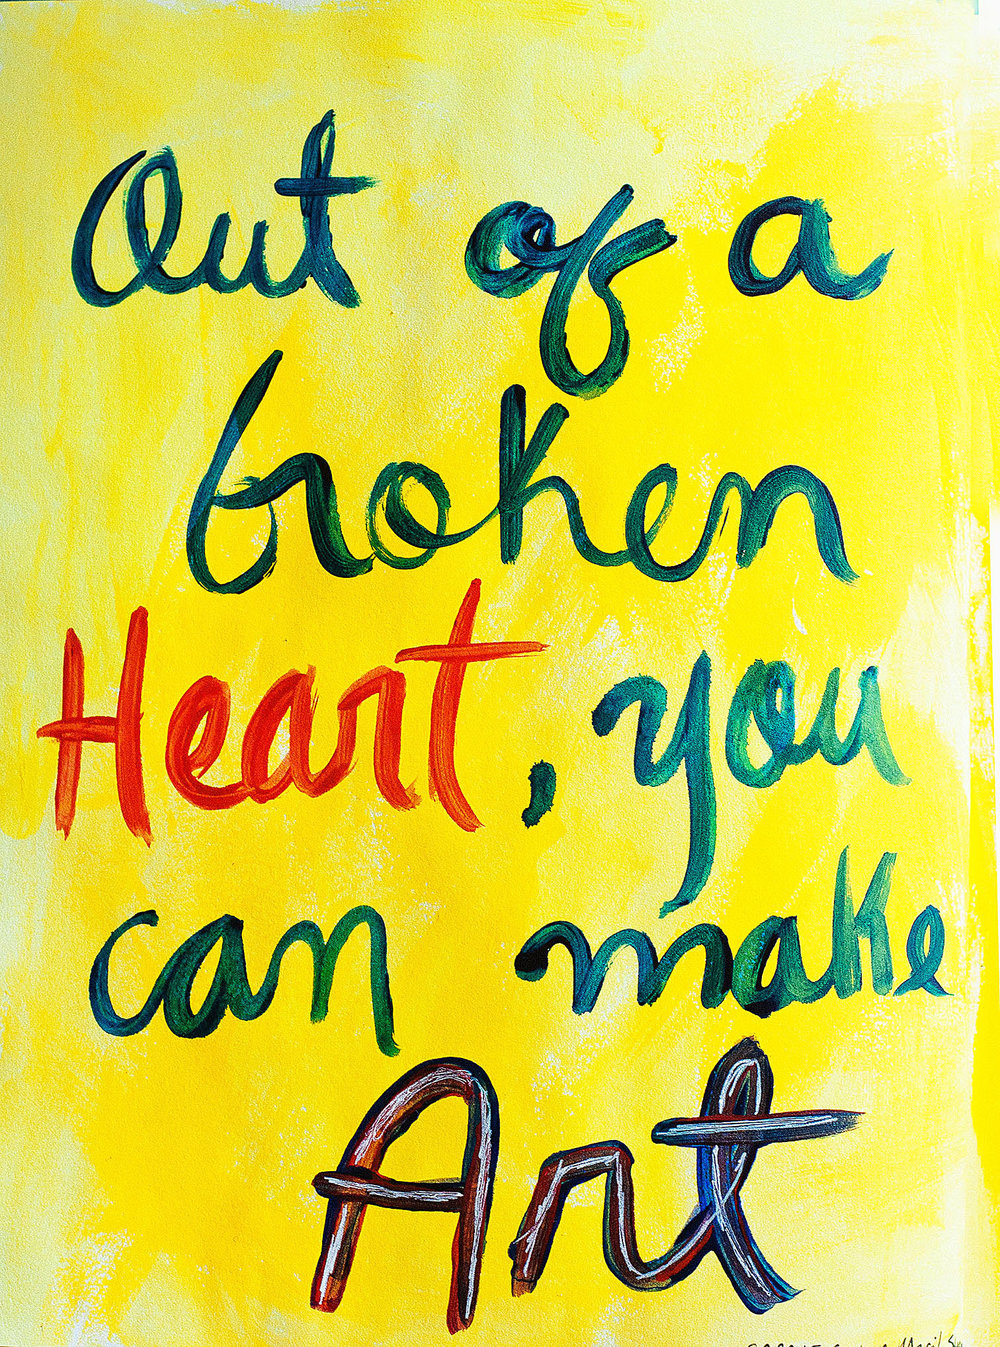 sheilaburgos-artjournal-quote.jpg